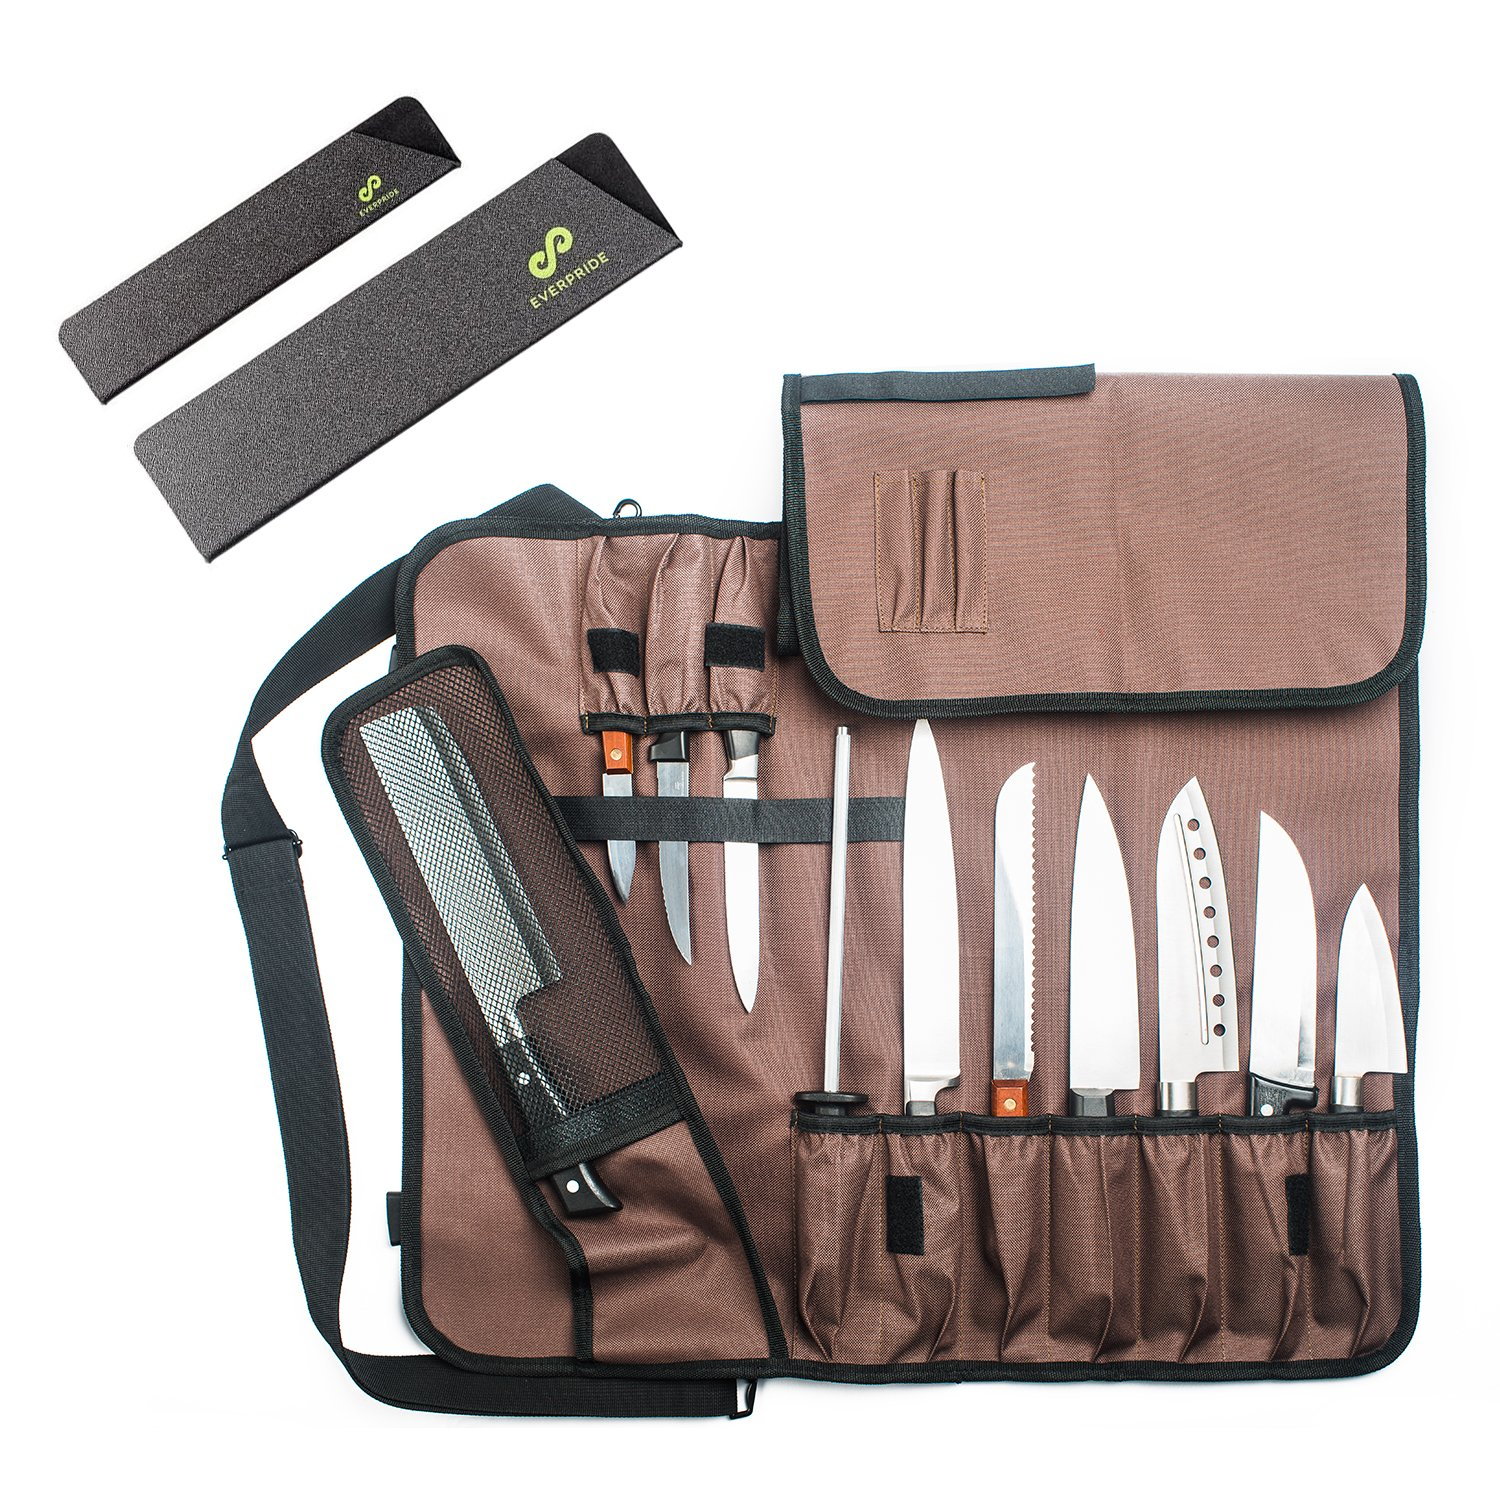 Chef Knife Roll Bag (14 Slots) | Knife Bag Holds 10 Knives, 1 Meat Cleaver And 3 Utensil Pockets | Includes 2 Knife Guards | Easily Carried by Shoulder Strap For Sous Chefs, Cooks, Culinary Students